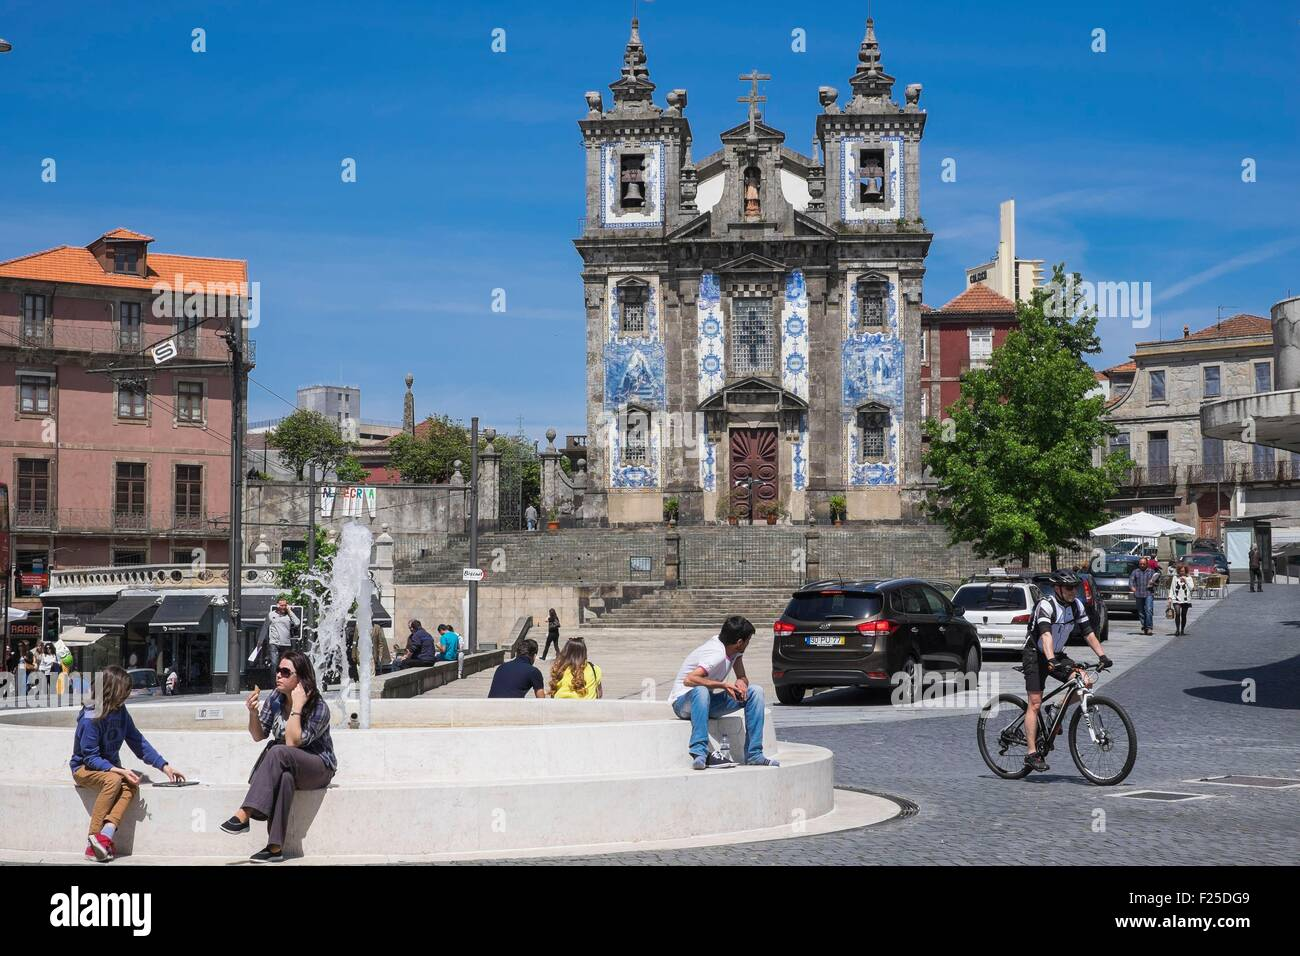 Portugal, North region, Porto, historic centre listed as World Heritage by UNESCO, Santo Ildefonso church - Stock Image